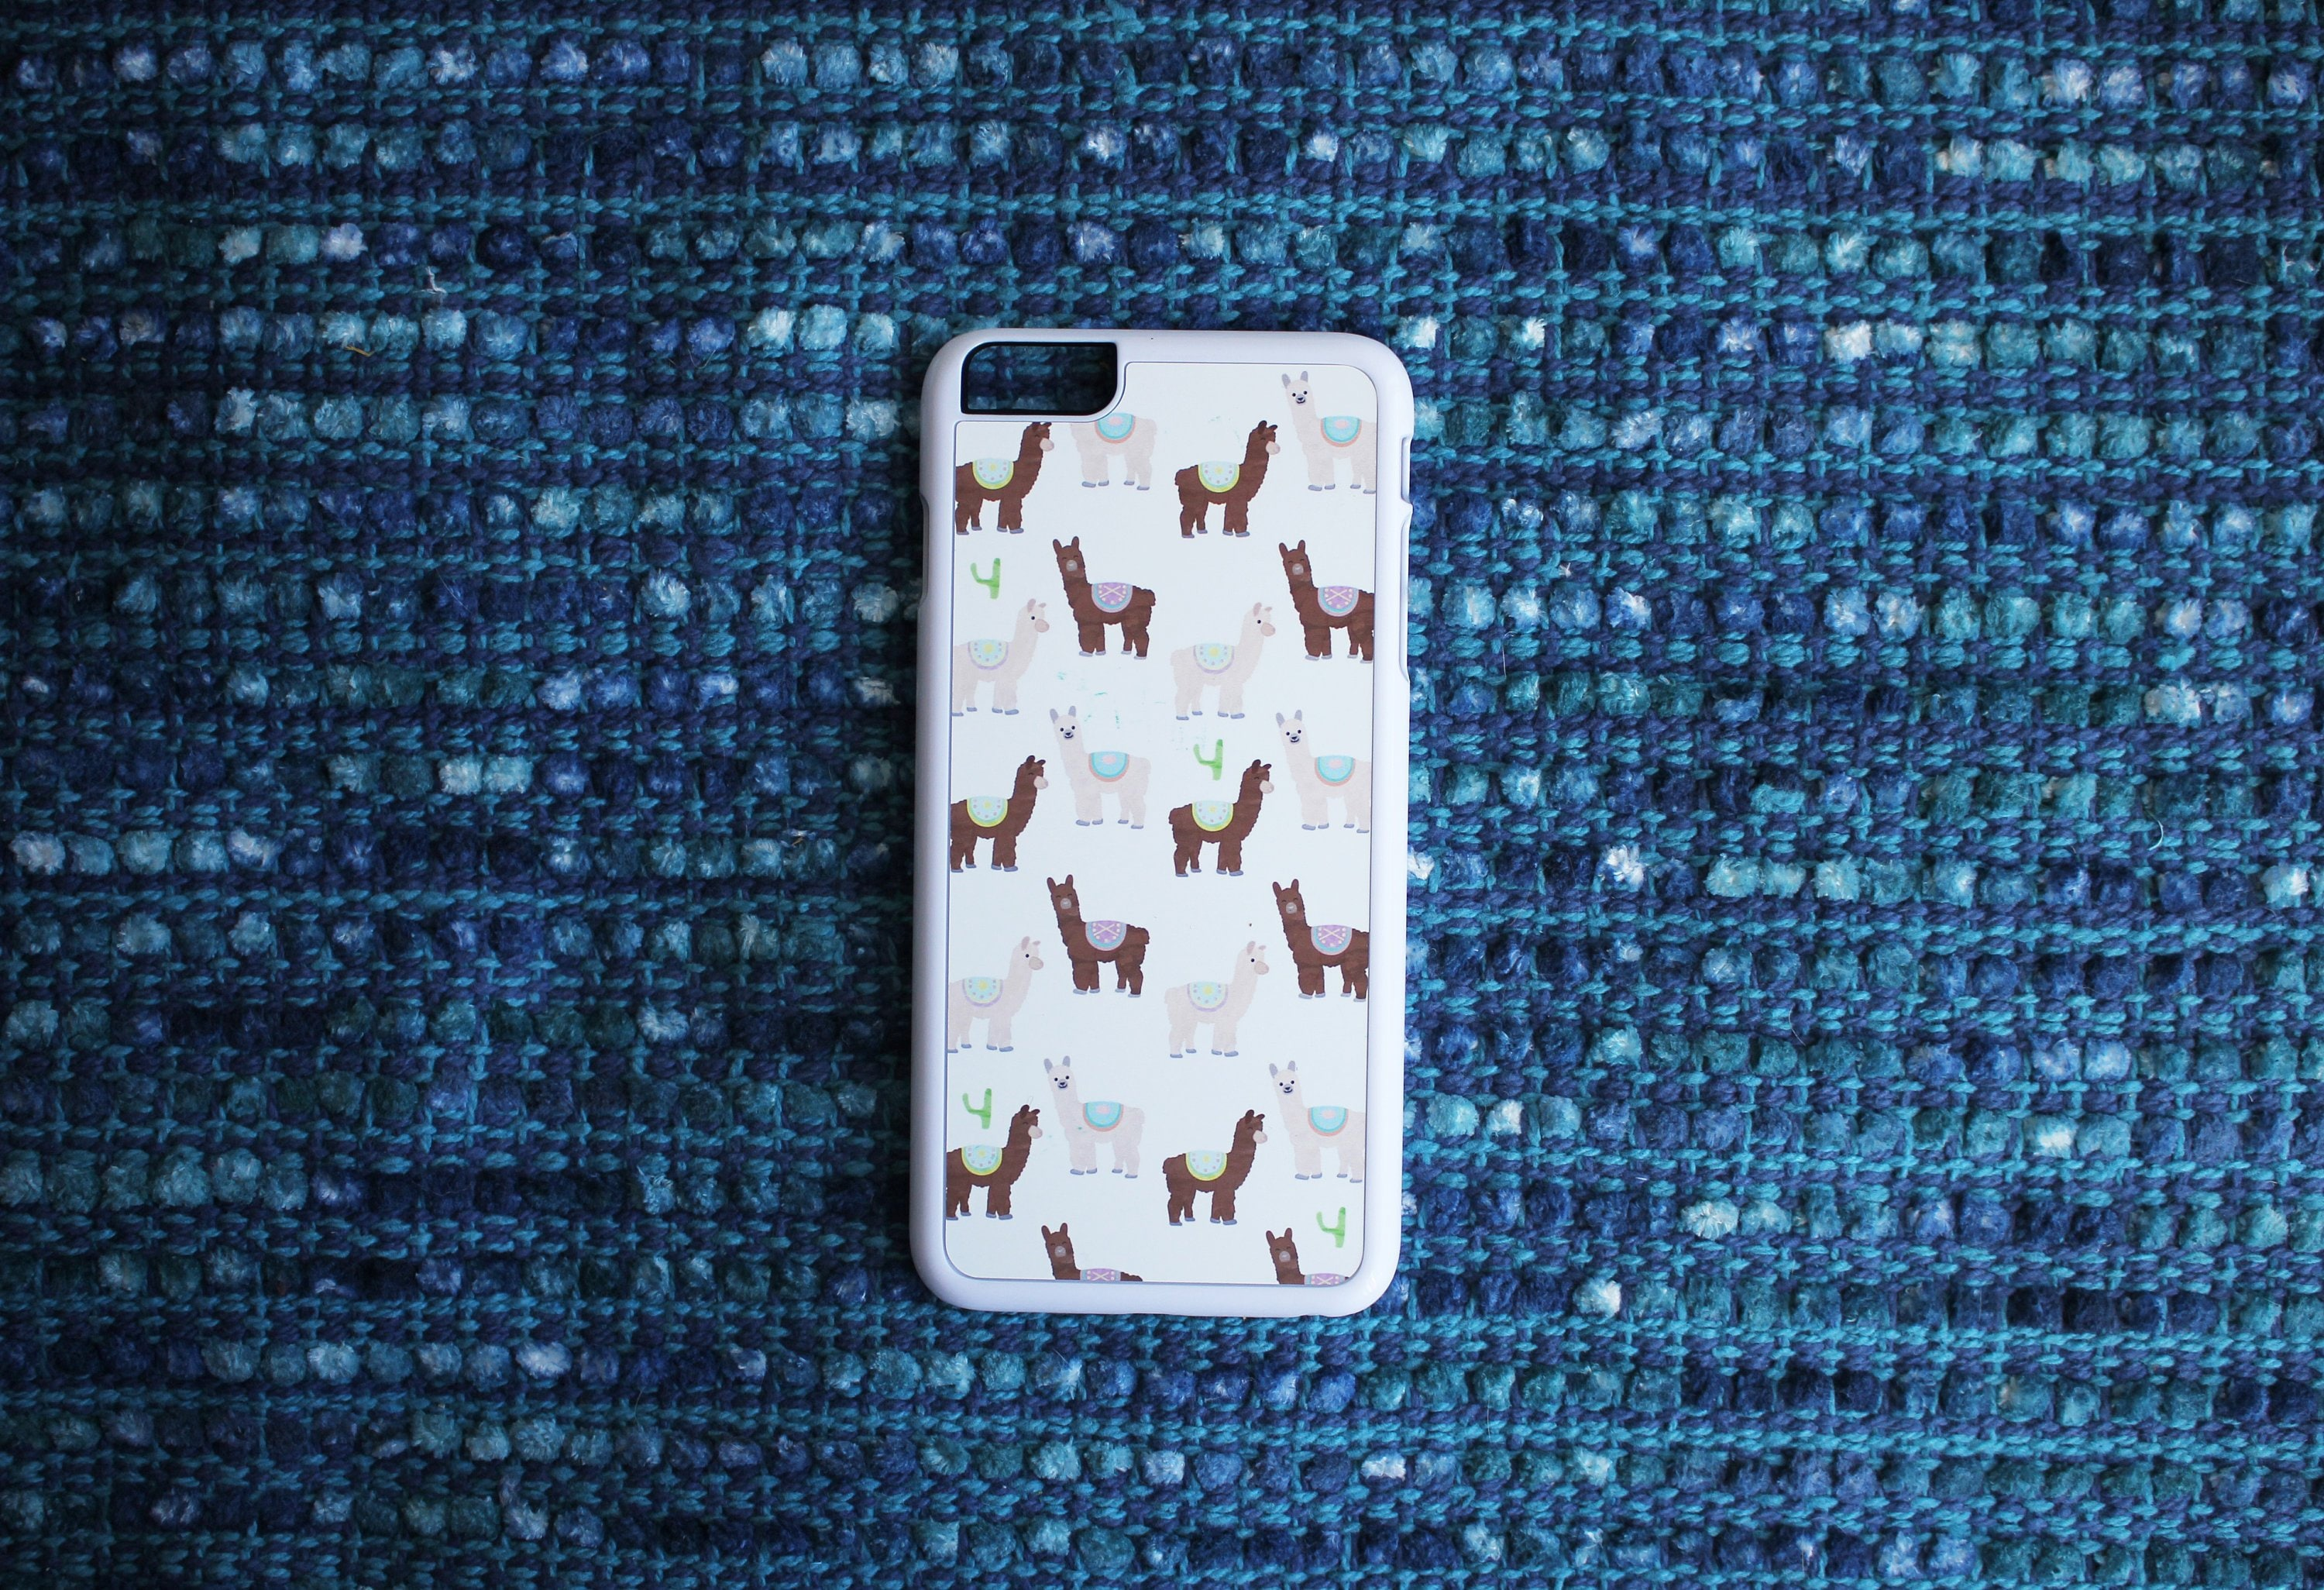 alpaca iphone 6 plus case defects as is defect reduced etsy. Black Bedroom Furniture Sets. Home Design Ideas